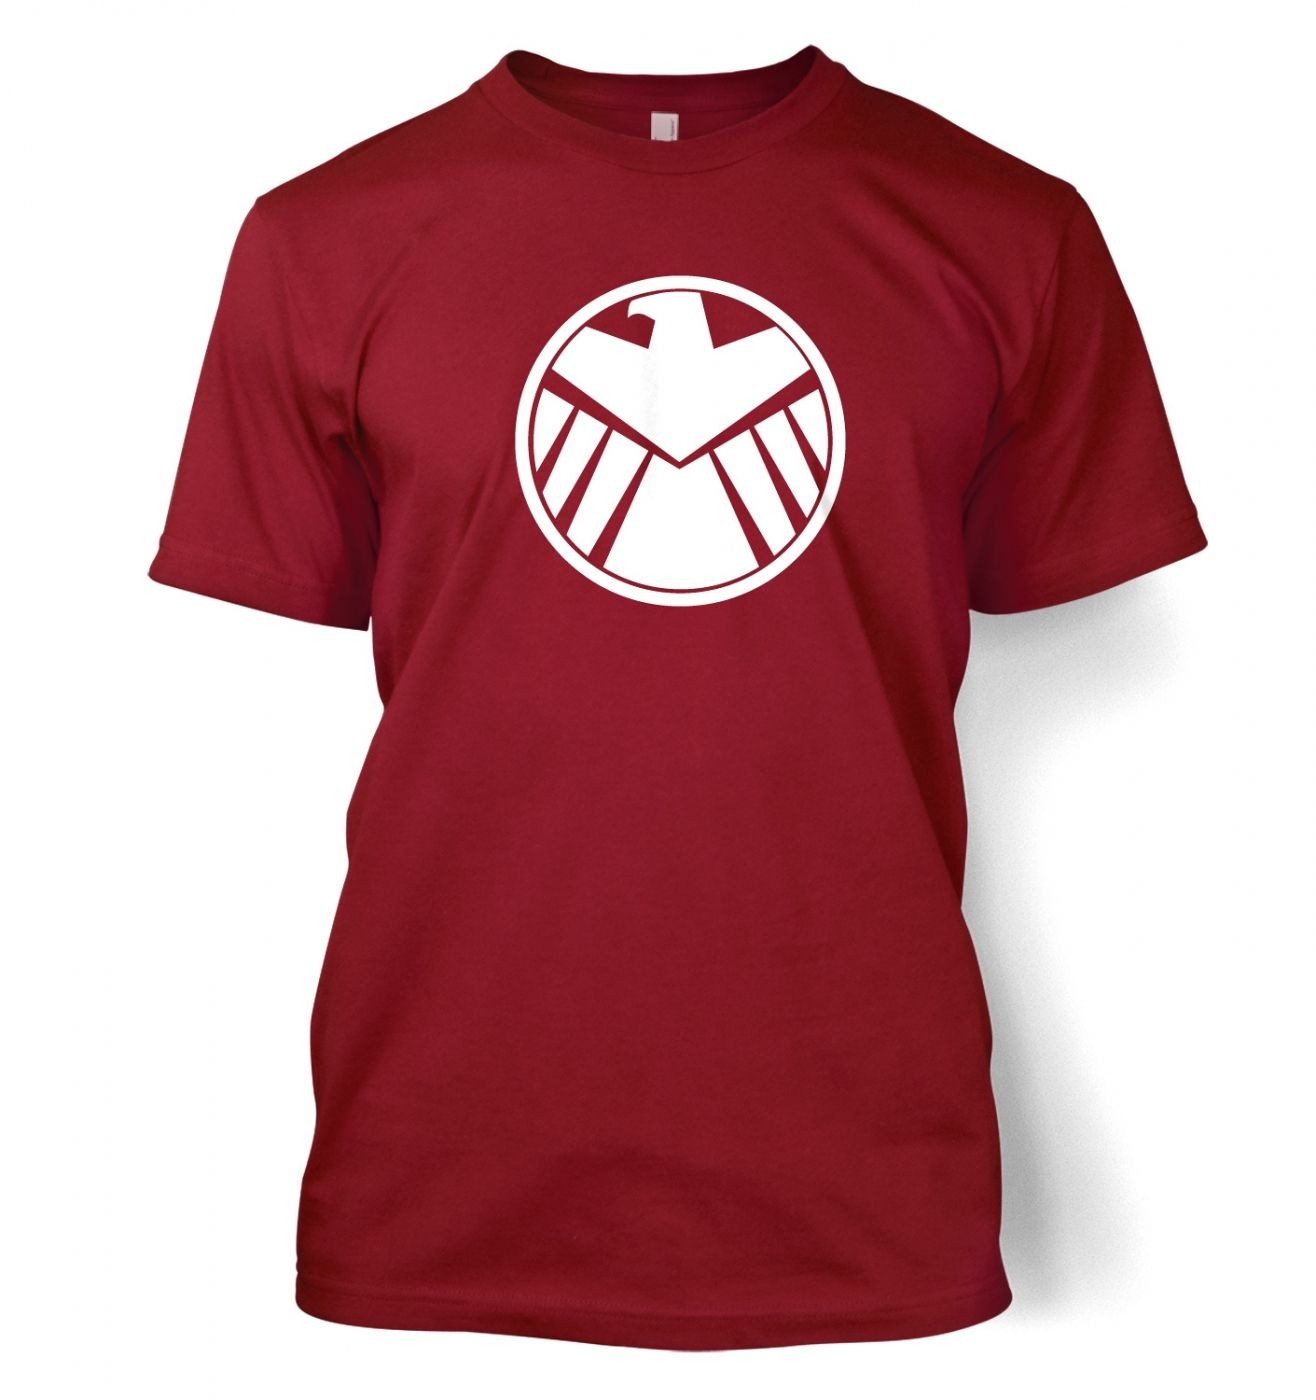 Shield men's t-shirt